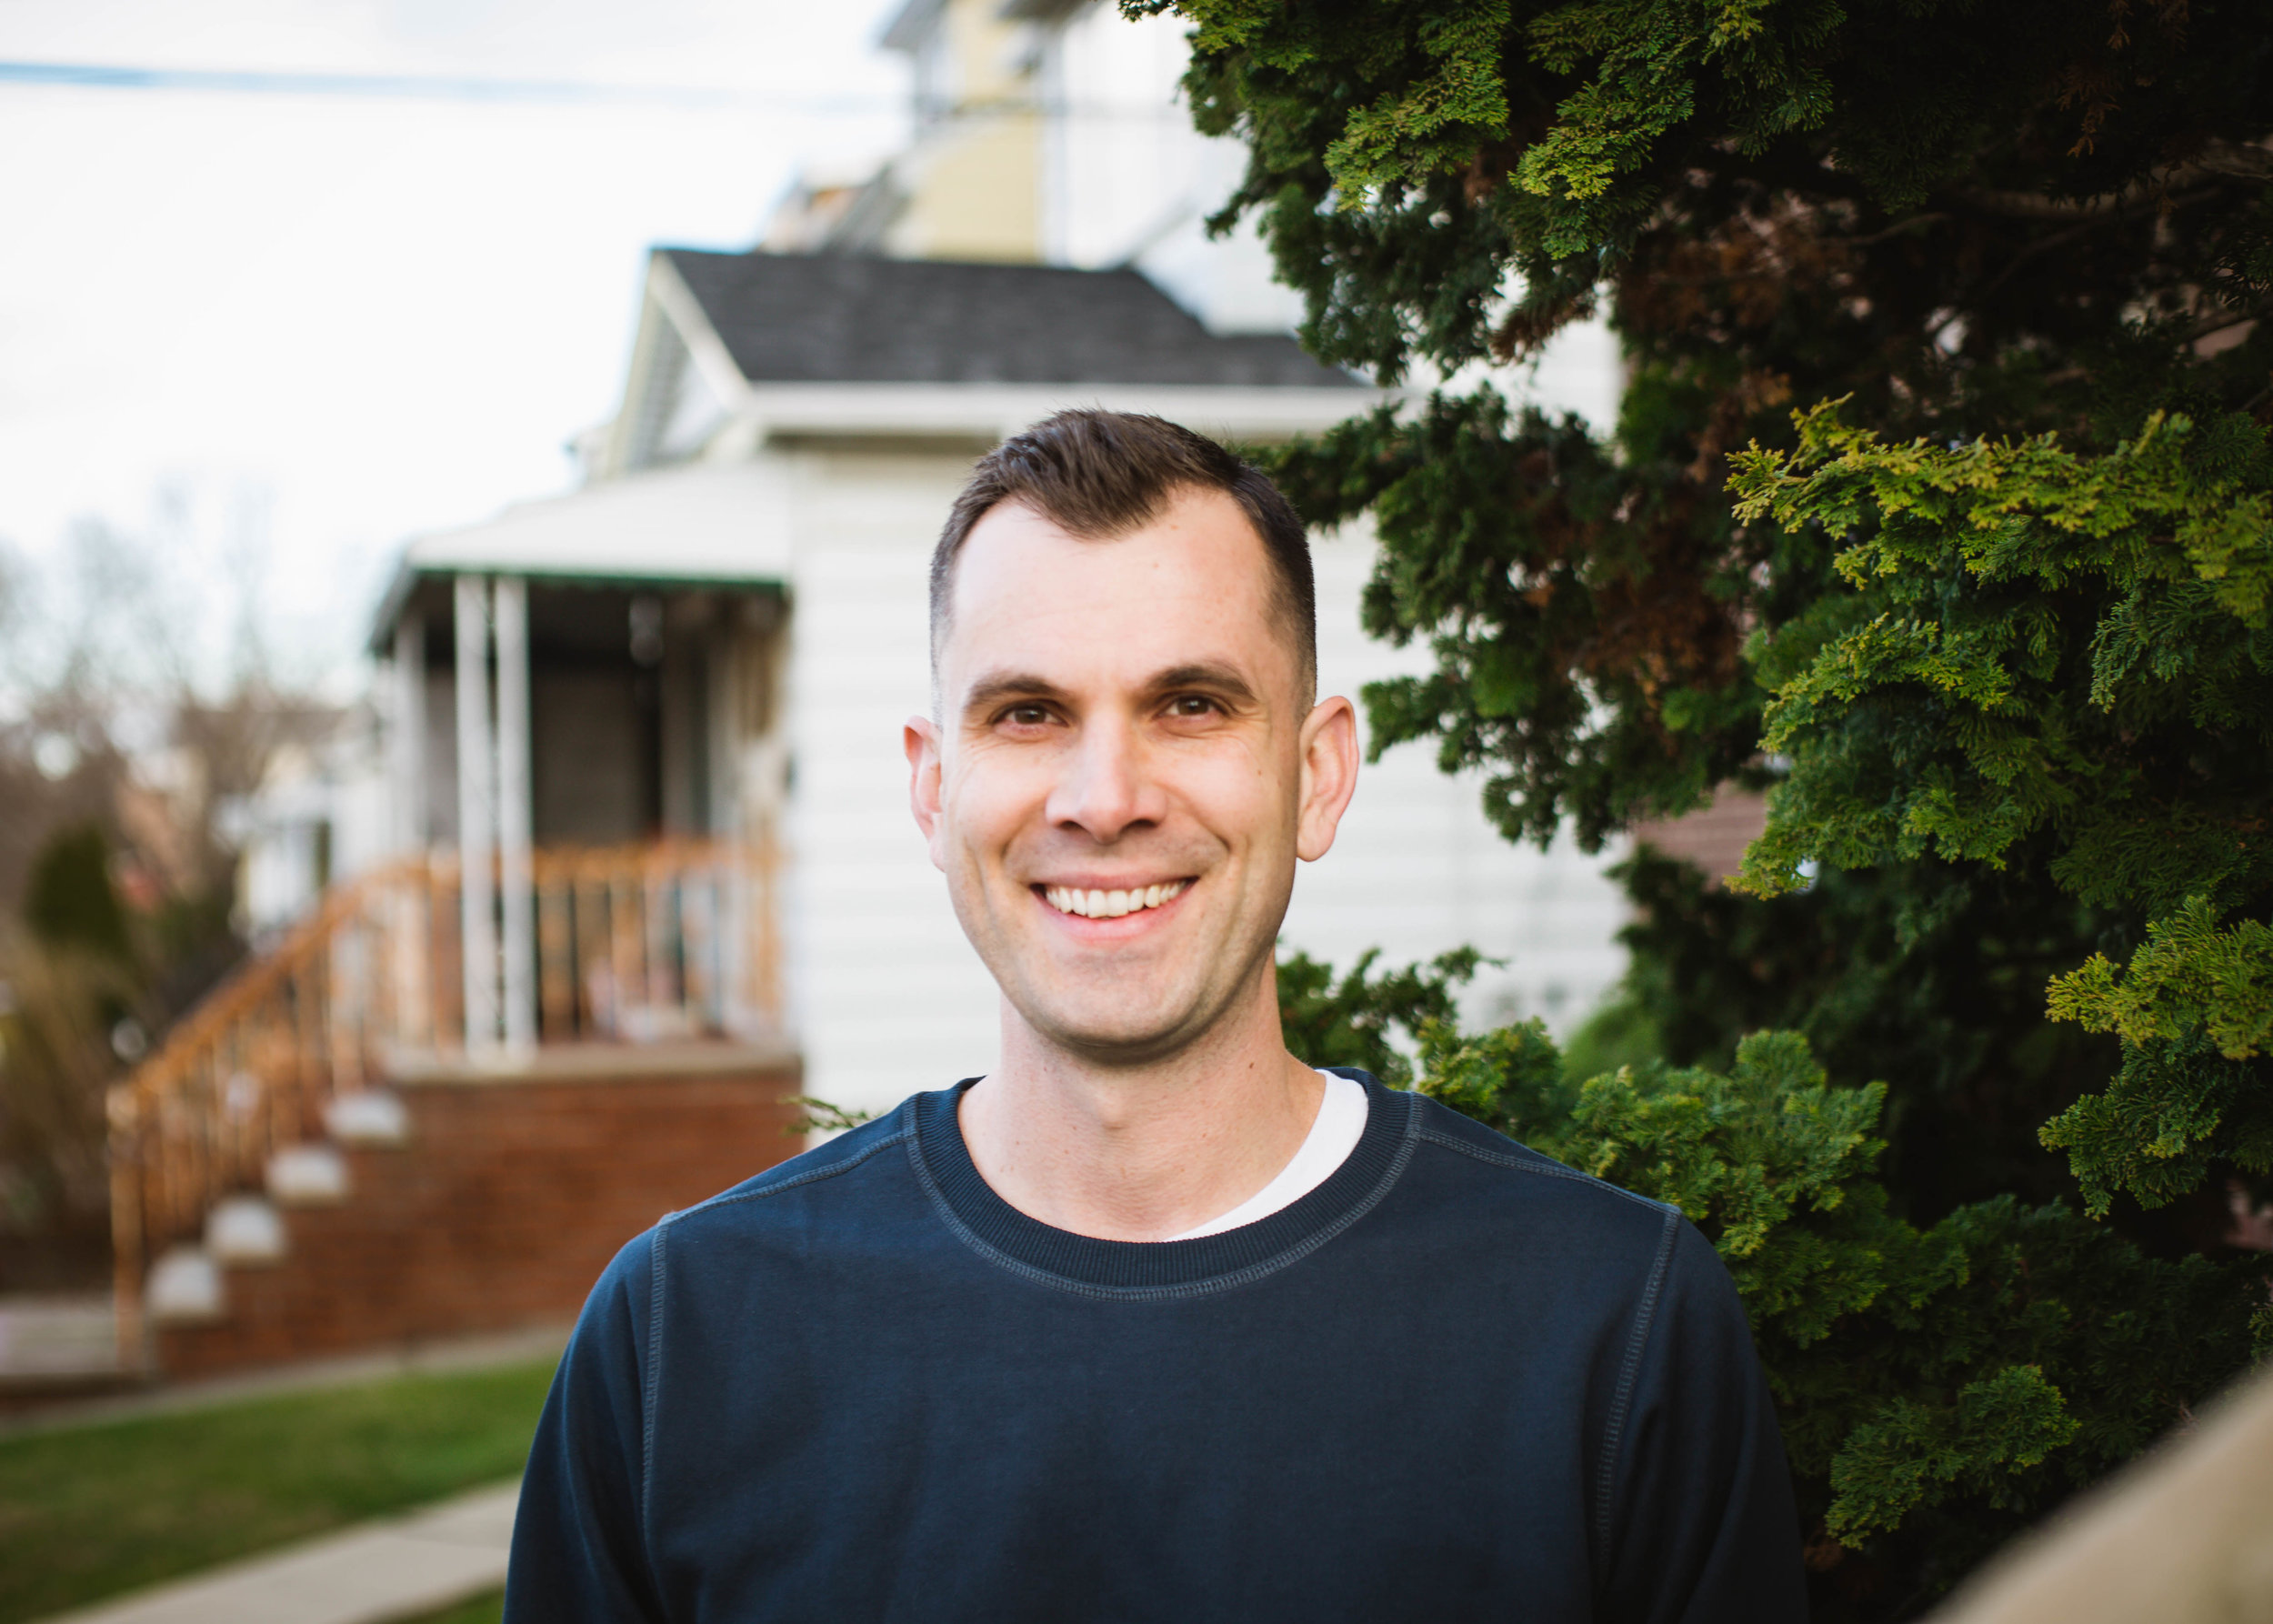 JONATHAN NASON - Hi, I'm Jonathan, the Lead Pastor here at New Hope. I'm from Memphis, TN, but have lived in Queens since January 2018. My wife and I moved to Queens because we love the diversity of cultures and people, and all the good food. We believe Queens is a beautiful picture of what heaven will look like with people from every nation worshipping our Savior, Jesus Christ. That is what excites me about New Hope the most, a group of people from all different backgrounds coming together to worship Jesus and love one another authentically. My wife and I have 3 kids: Samuel, Levi and Ella. They are full of energy and bring so much joy to our lives. For fun as a family, we love to explore this great city and play at the park. For fun personally, I enjoy running and cycling, and reading a good book while sipping on some coffee.